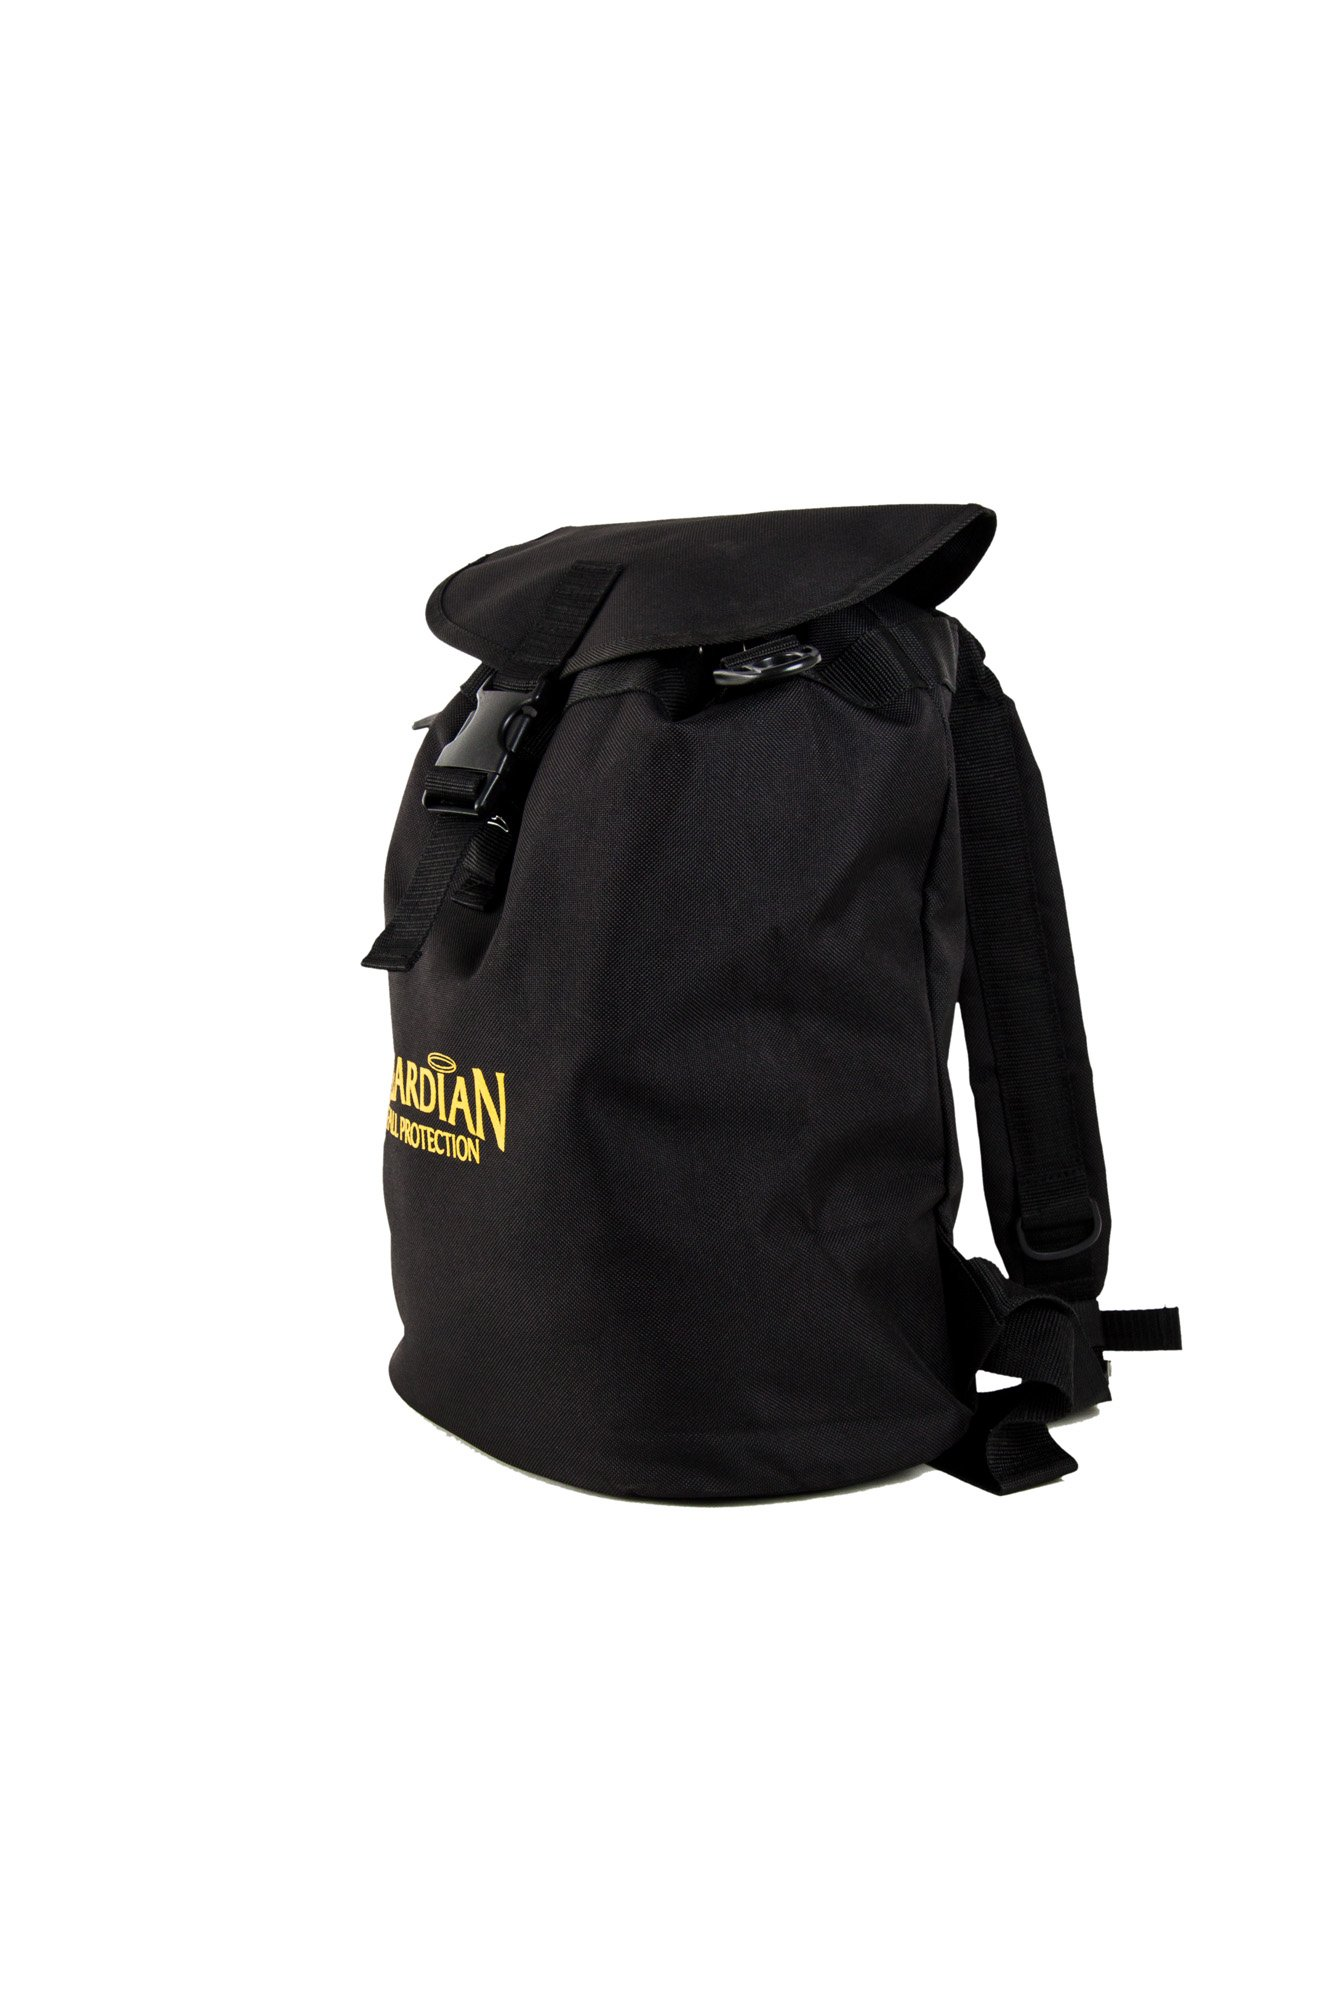 Guardian Fall Protection 00768 Ultra Sack Small Black Canvas Duffel Back Pack